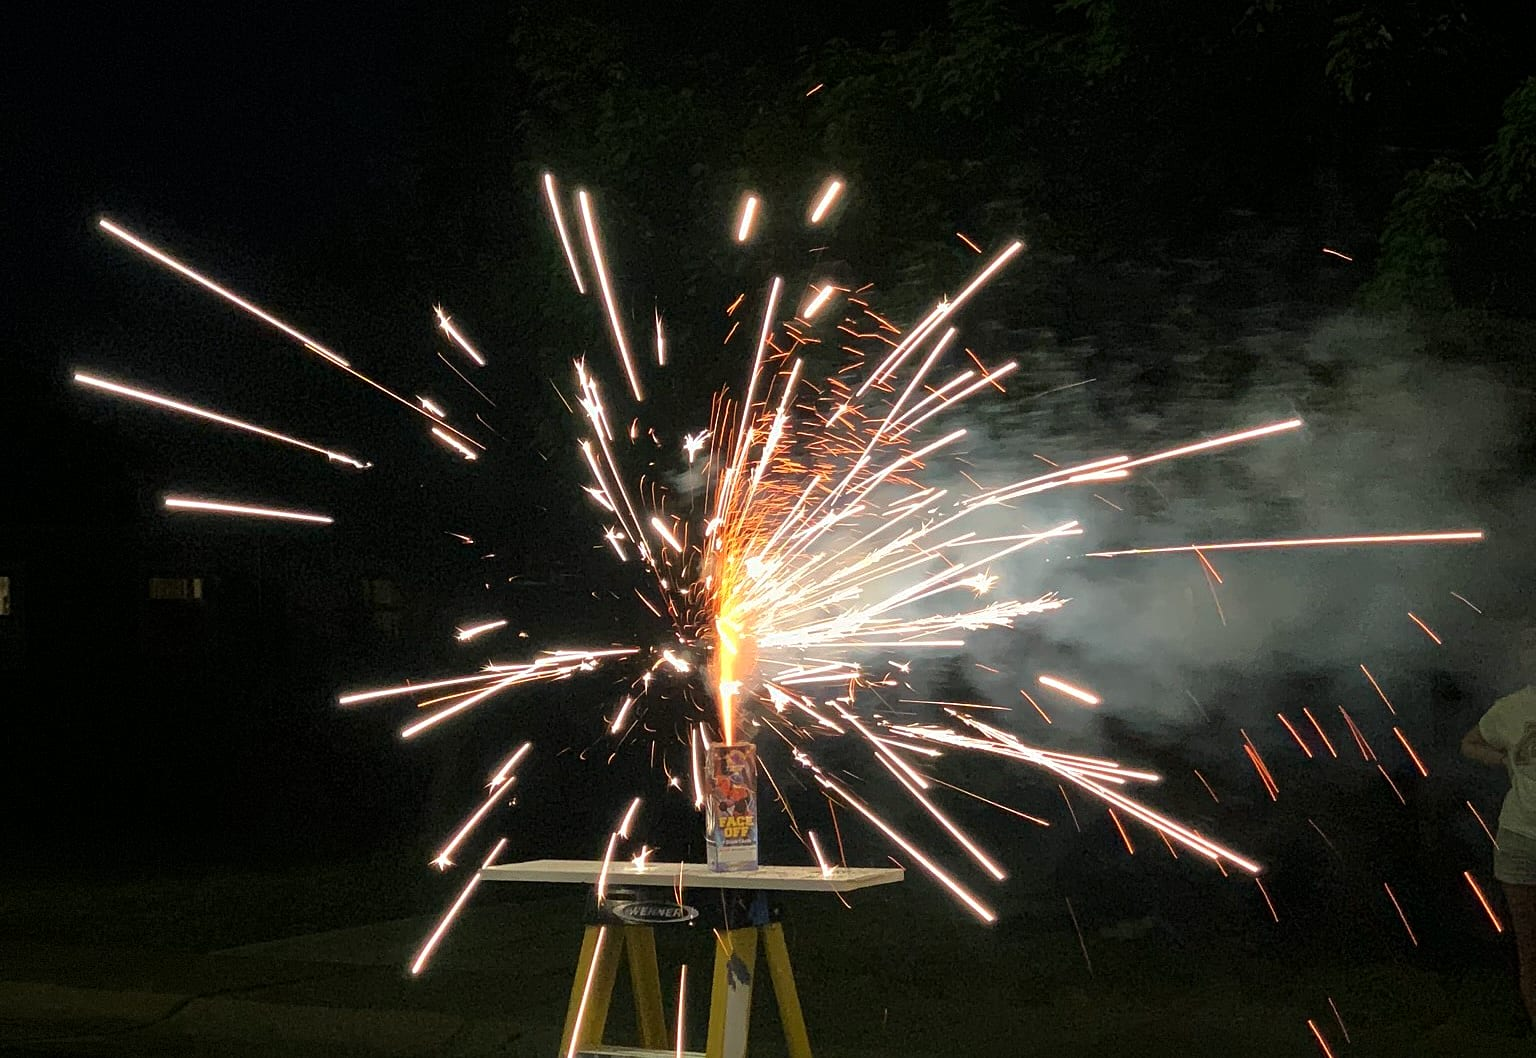 As illegal fireworks are on the rise, San Jose hopes to crack down